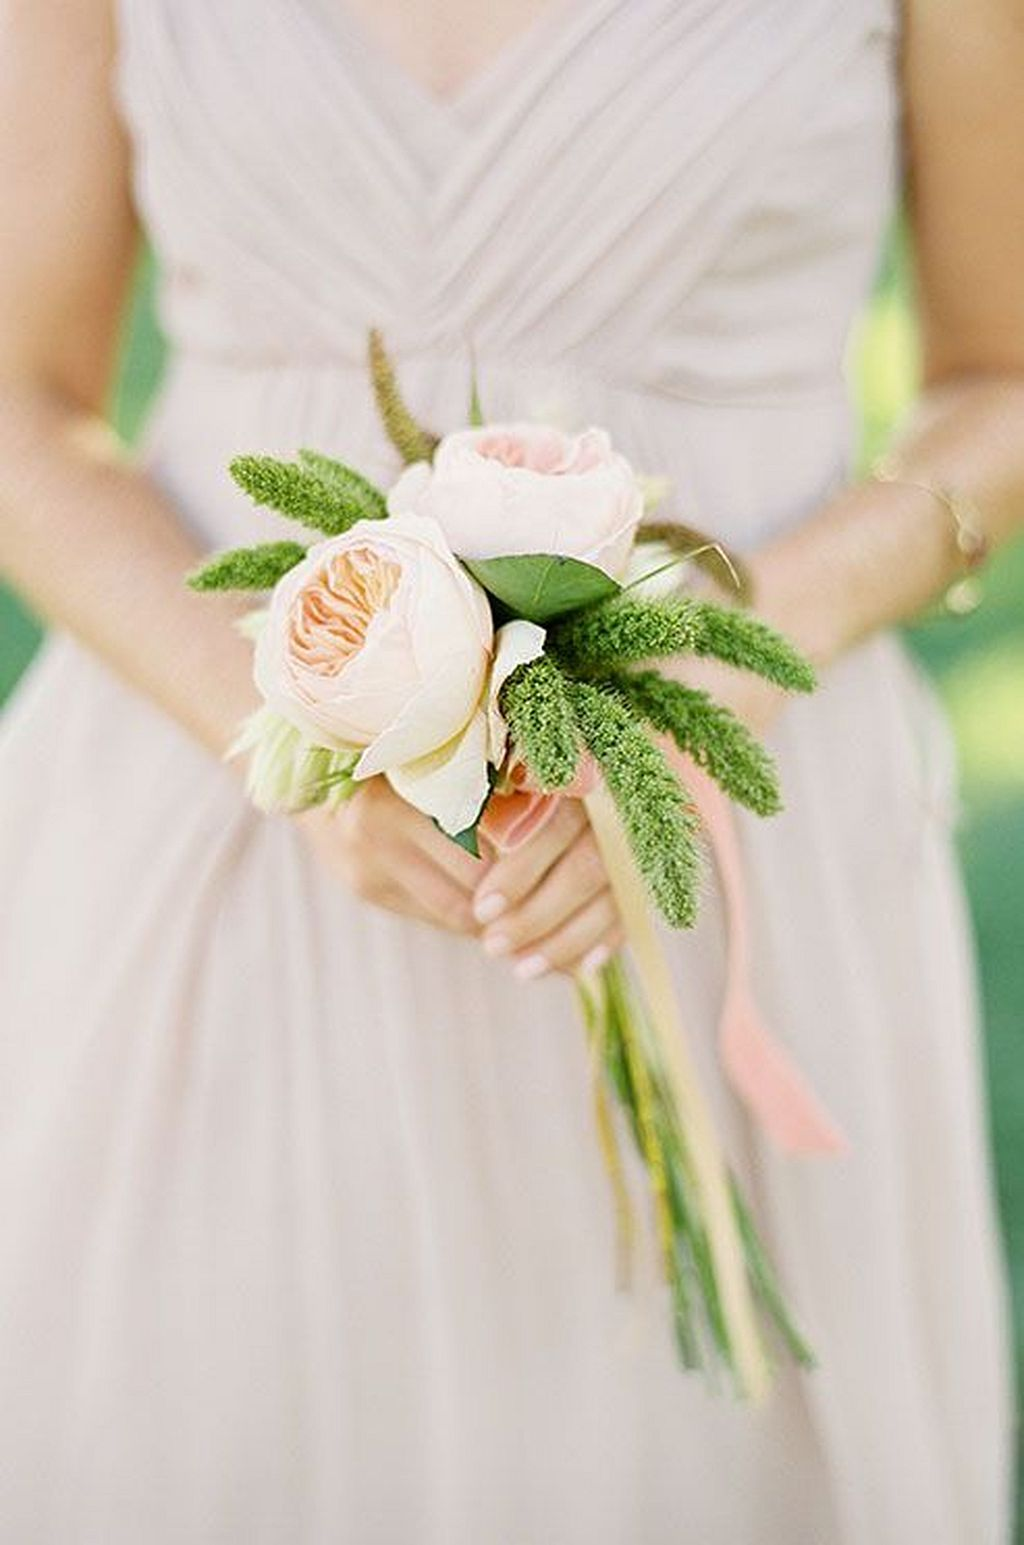 Awesome 70 Beautiful Bridesmaid Bouquet Ideas Https Weddmagz